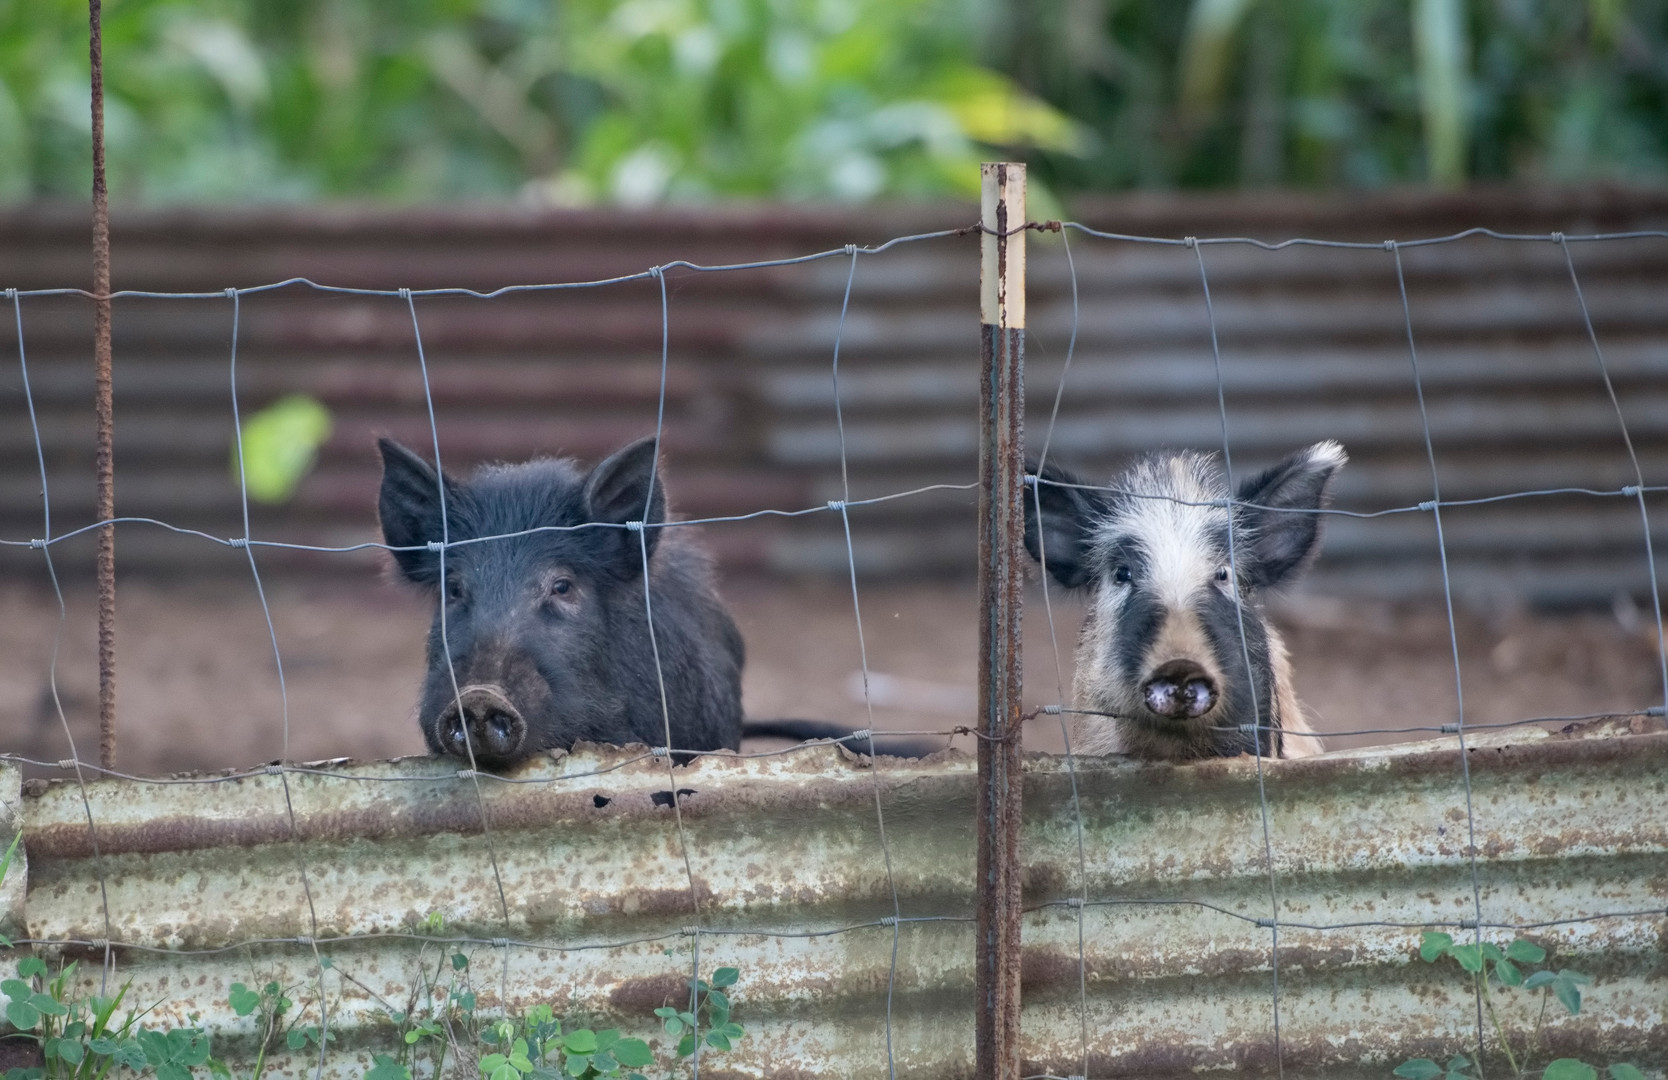 2 Pigs Behind Gate